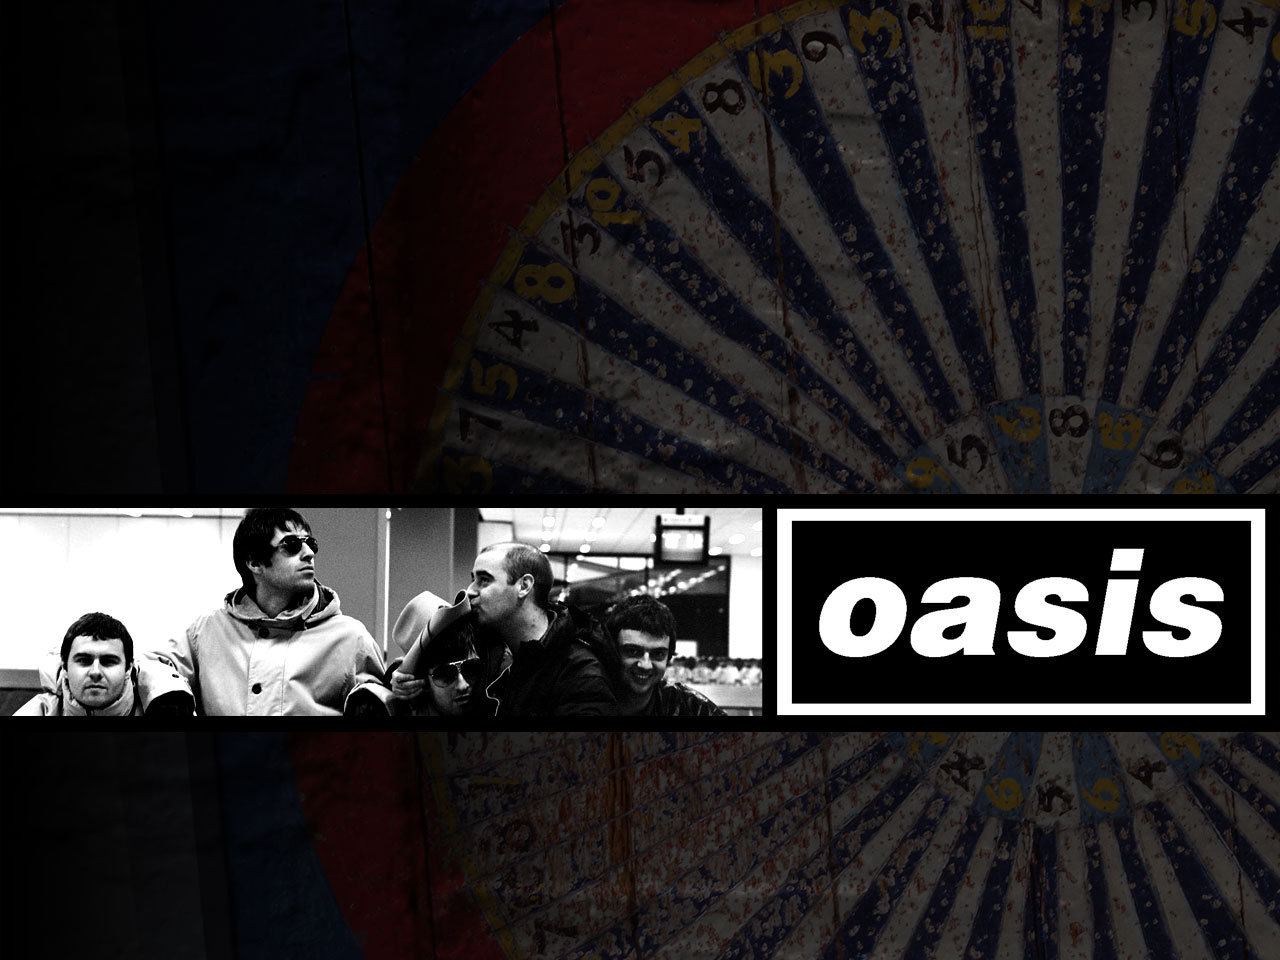 Oasis images Oasis Wallpaper HD wallpaper and background ... Oasis Band Wallpaper